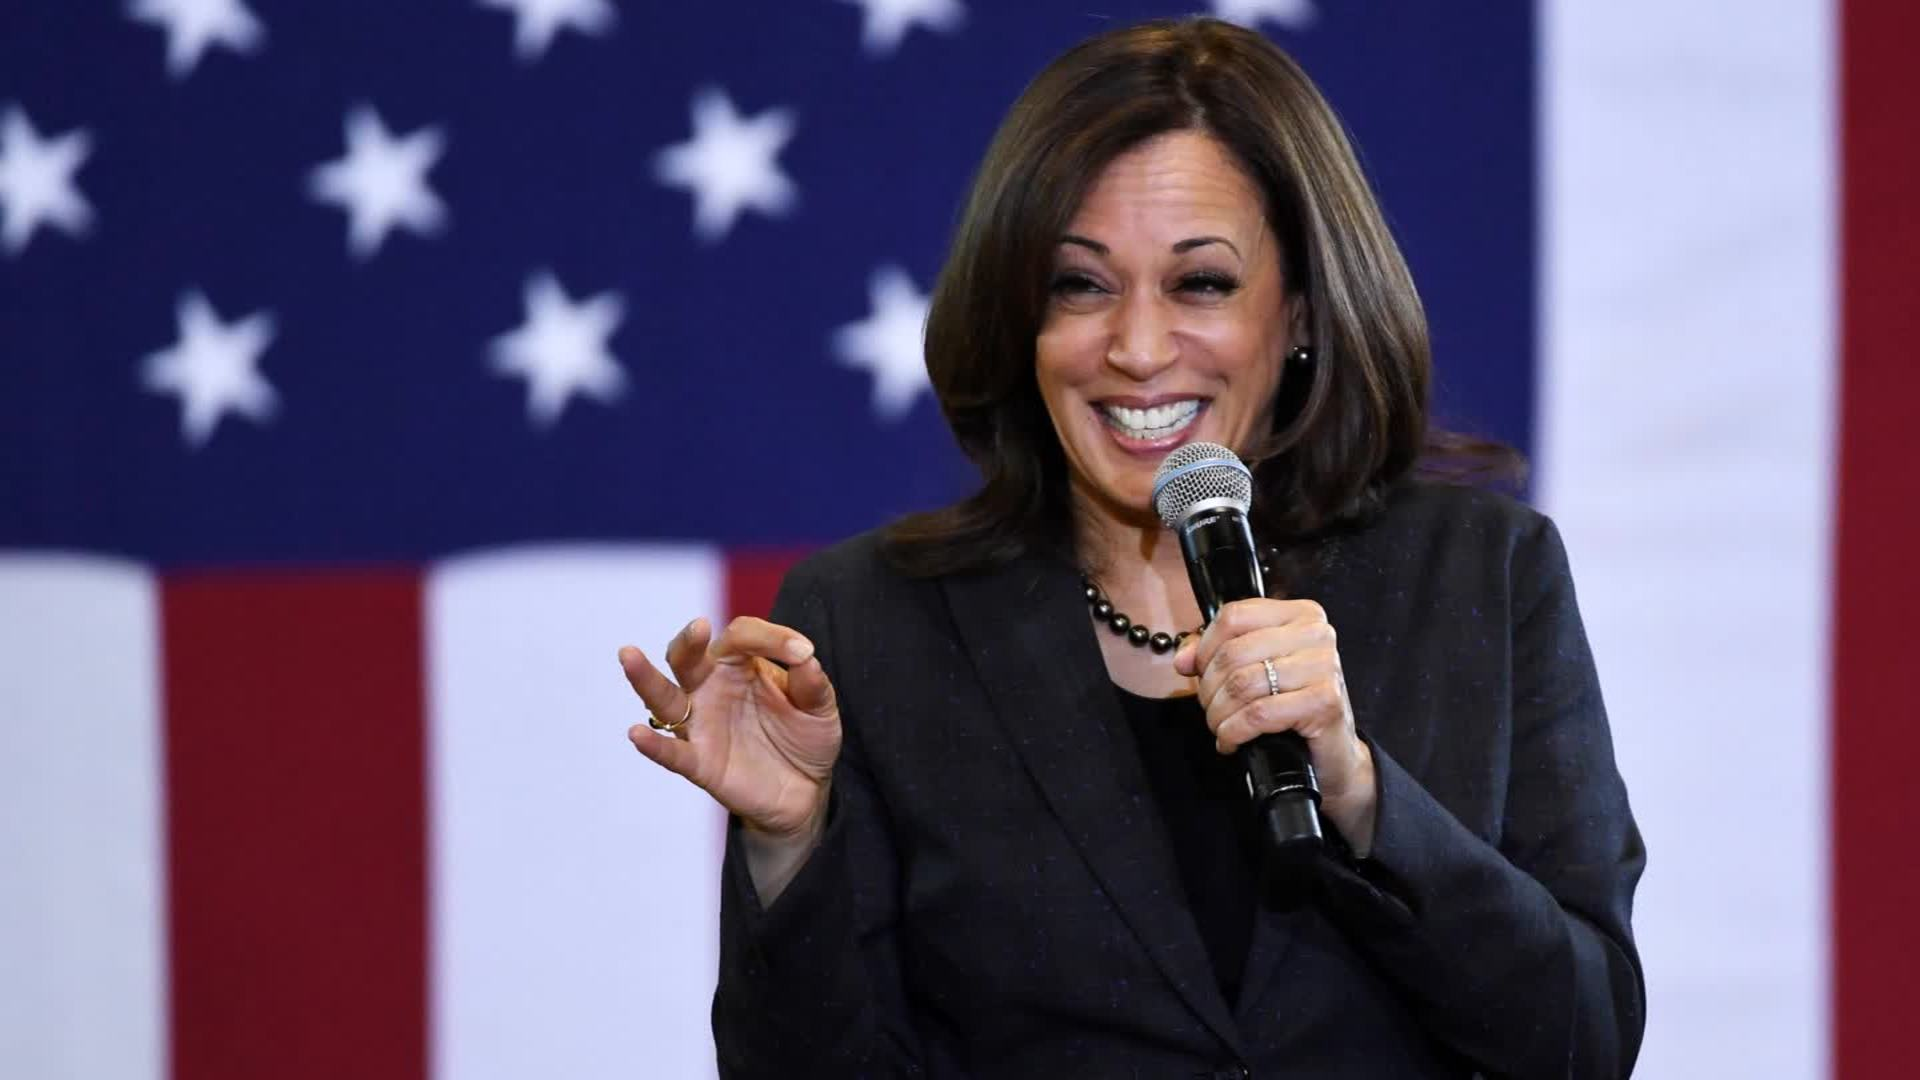 Kamala Harris considering endorsing Joe Biden for president, source says